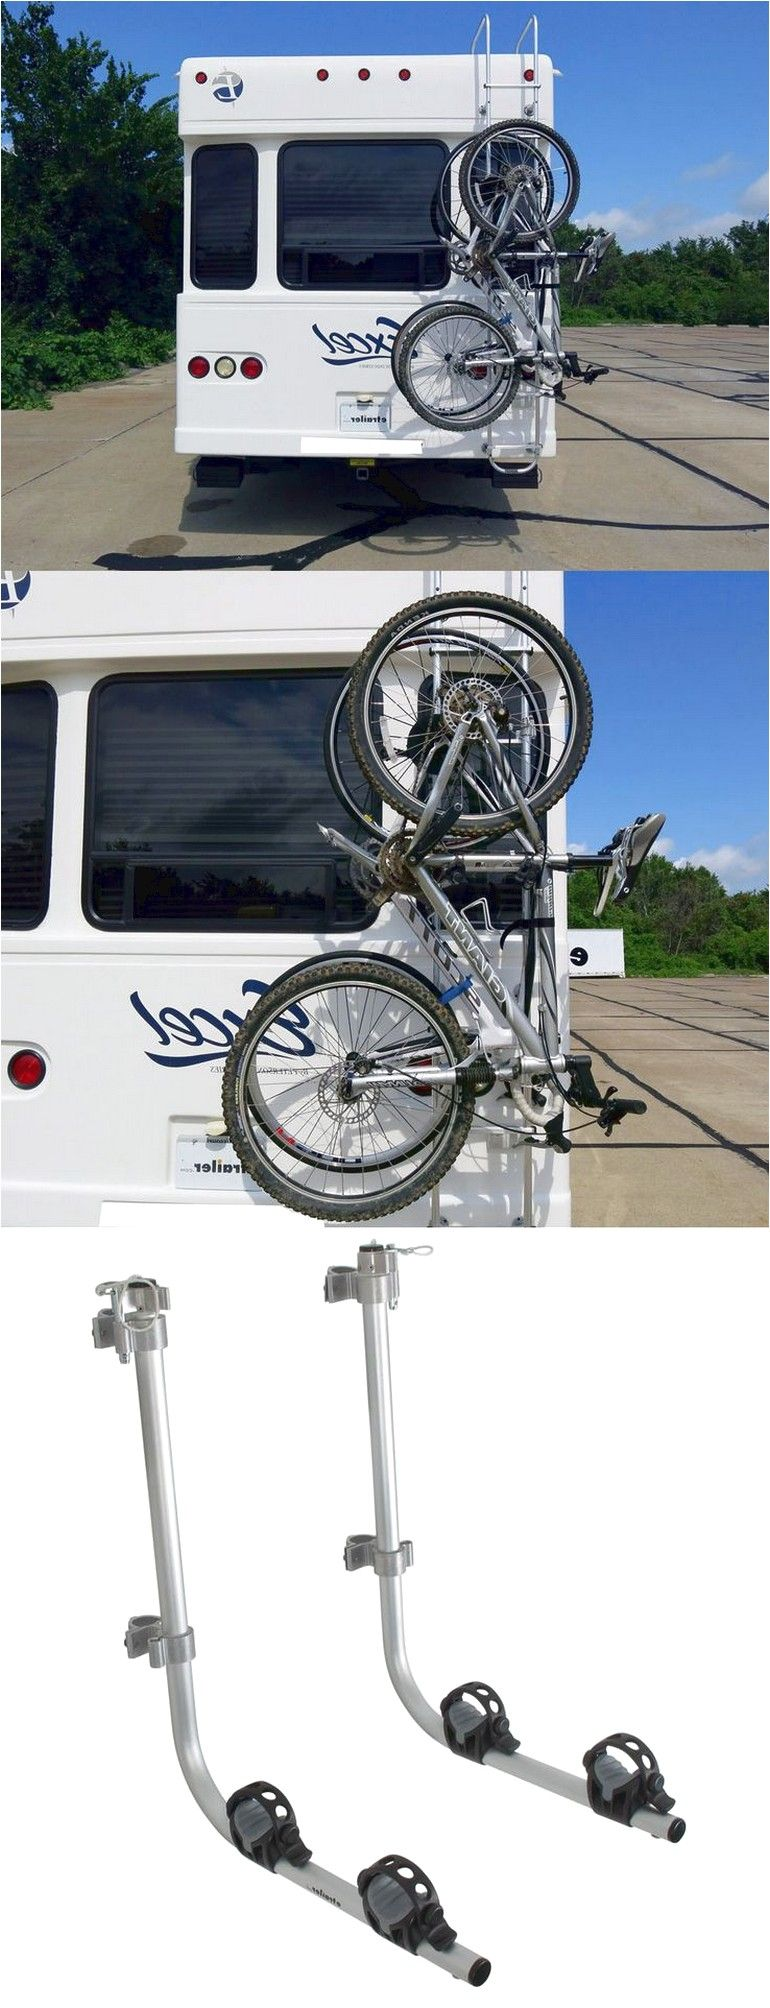 Rv Ladder Bike Rack Walmart Bike rack, Bike, Bicycle